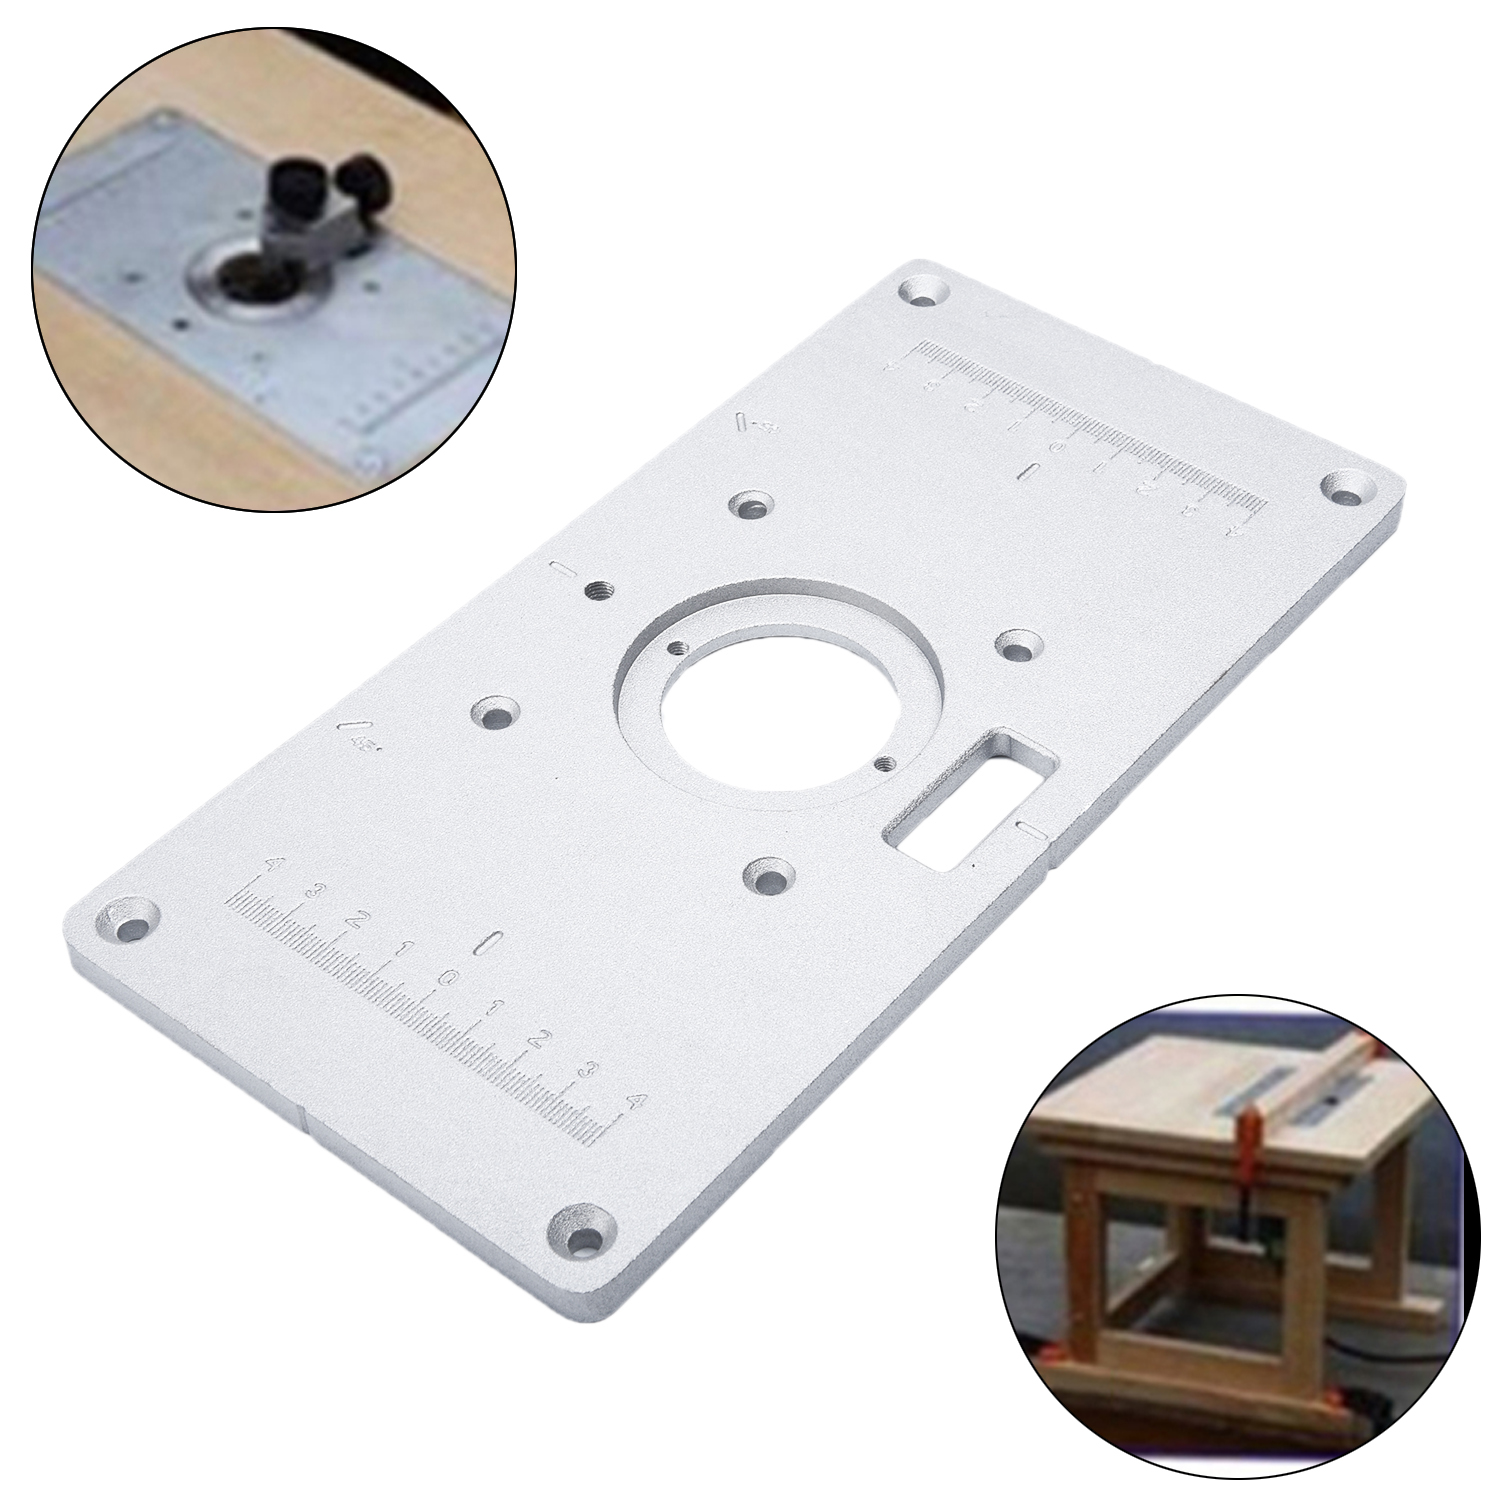 New Aluminum Insert Plate With 4 Rings Screws For Woodworking Benches Hot Useful